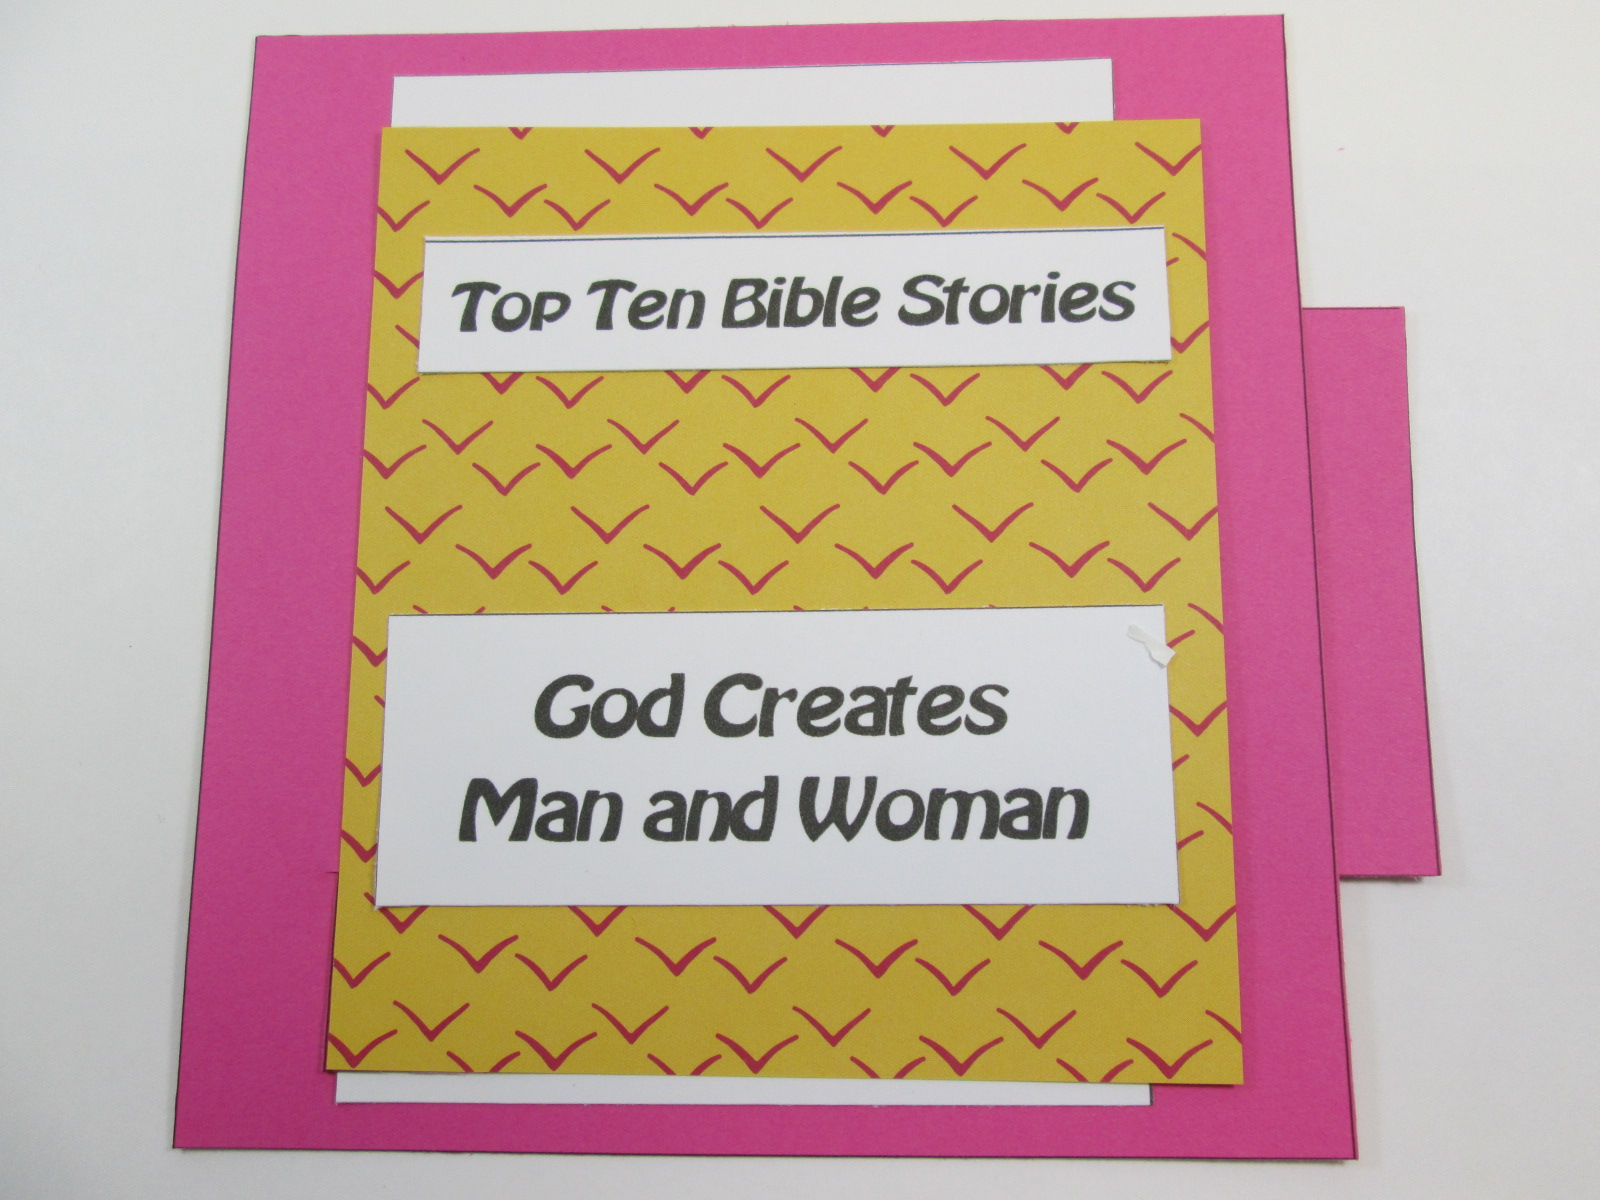 #2 God Creates Man And Woman